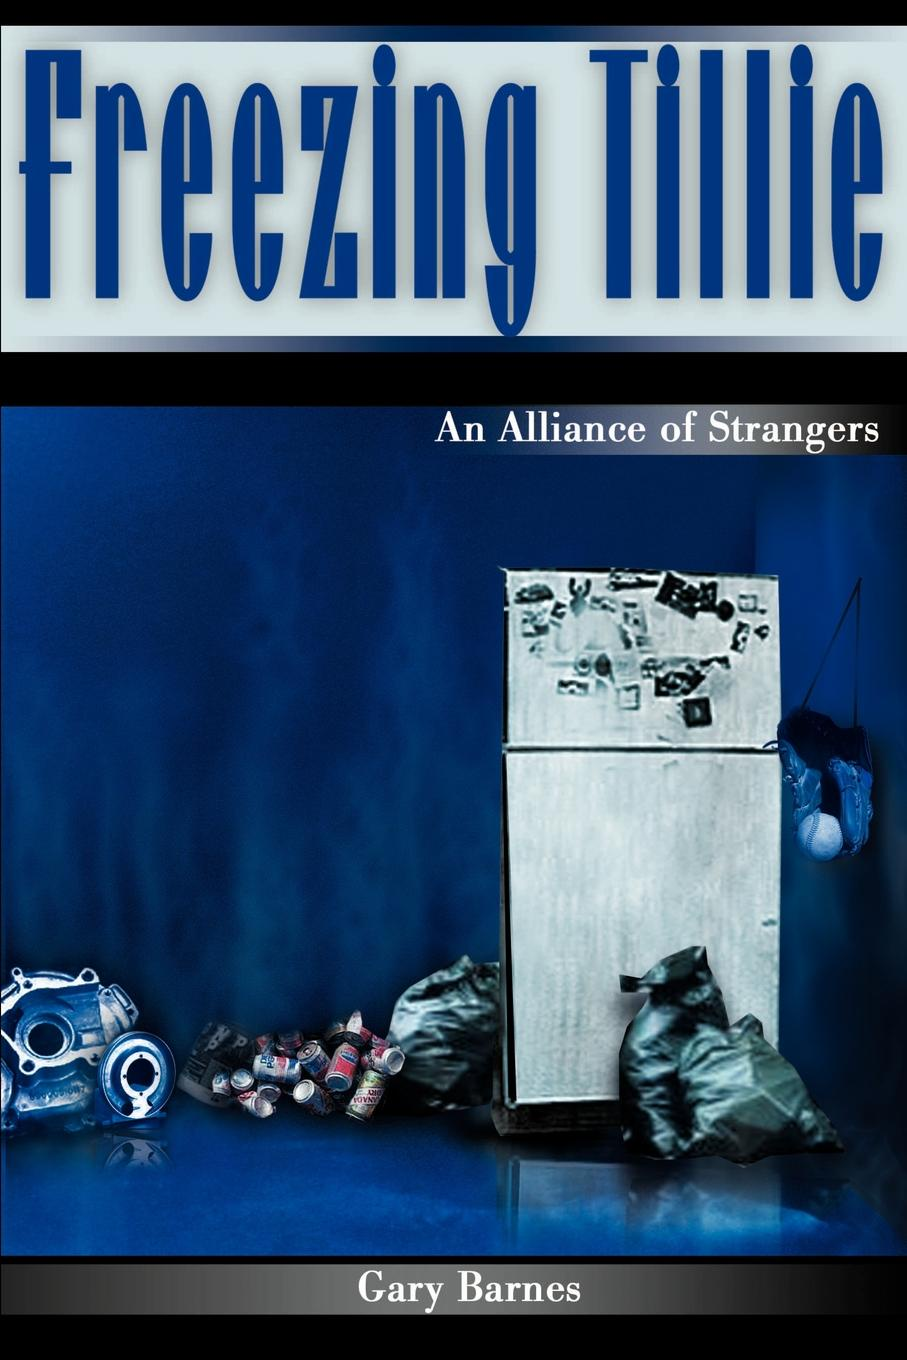 Freezing Tillie. An Alliance of Strangers. Gary Barnes